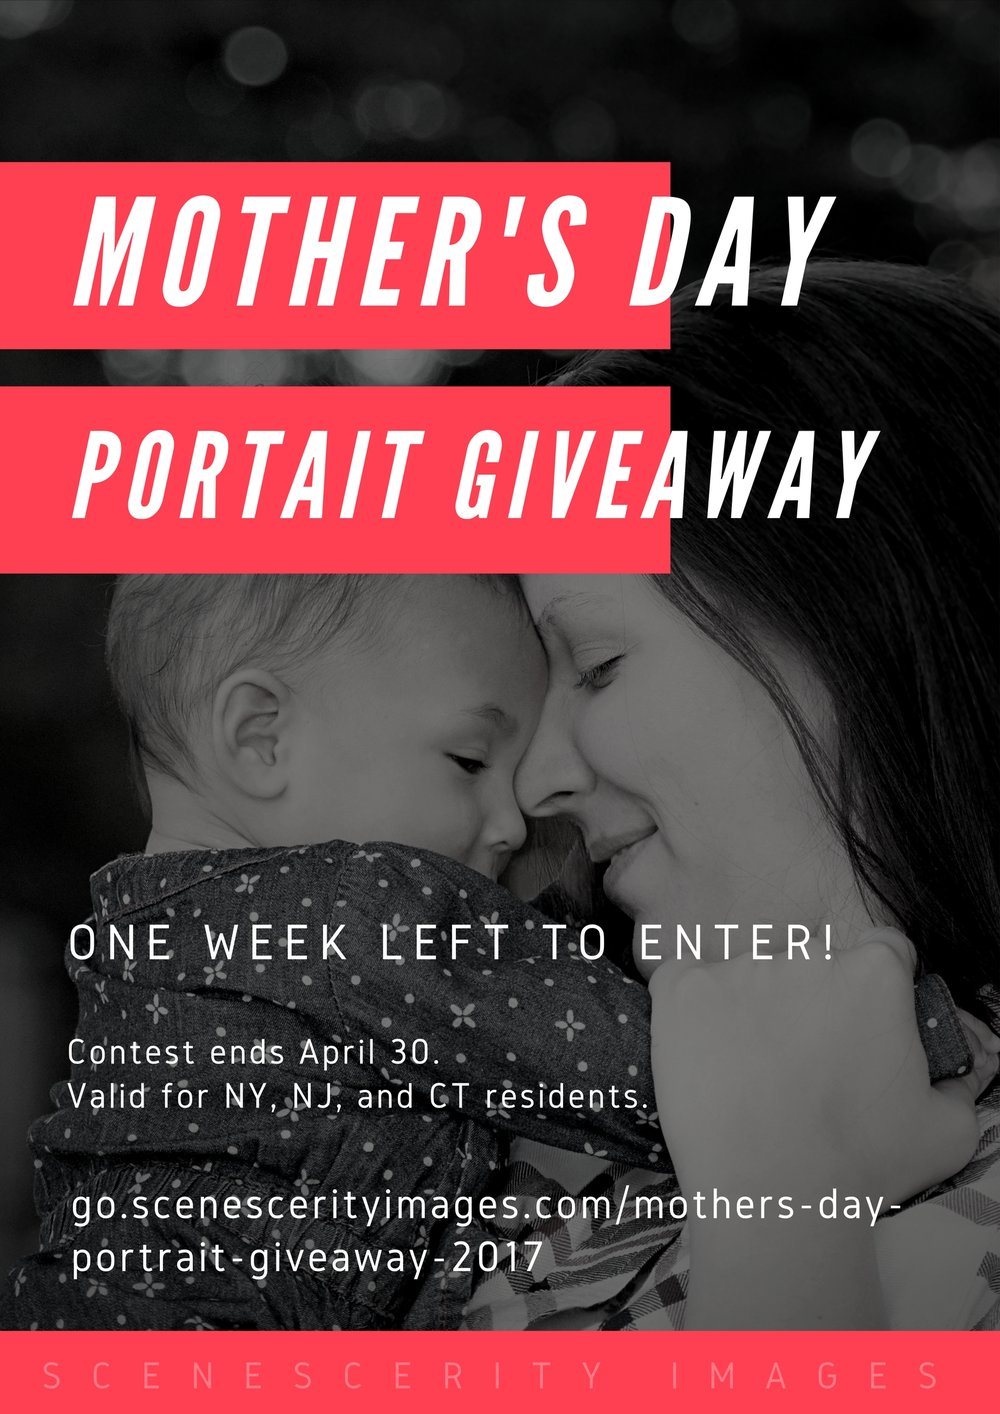 Mother's day portrait giveaway 2017 NY NJ CT